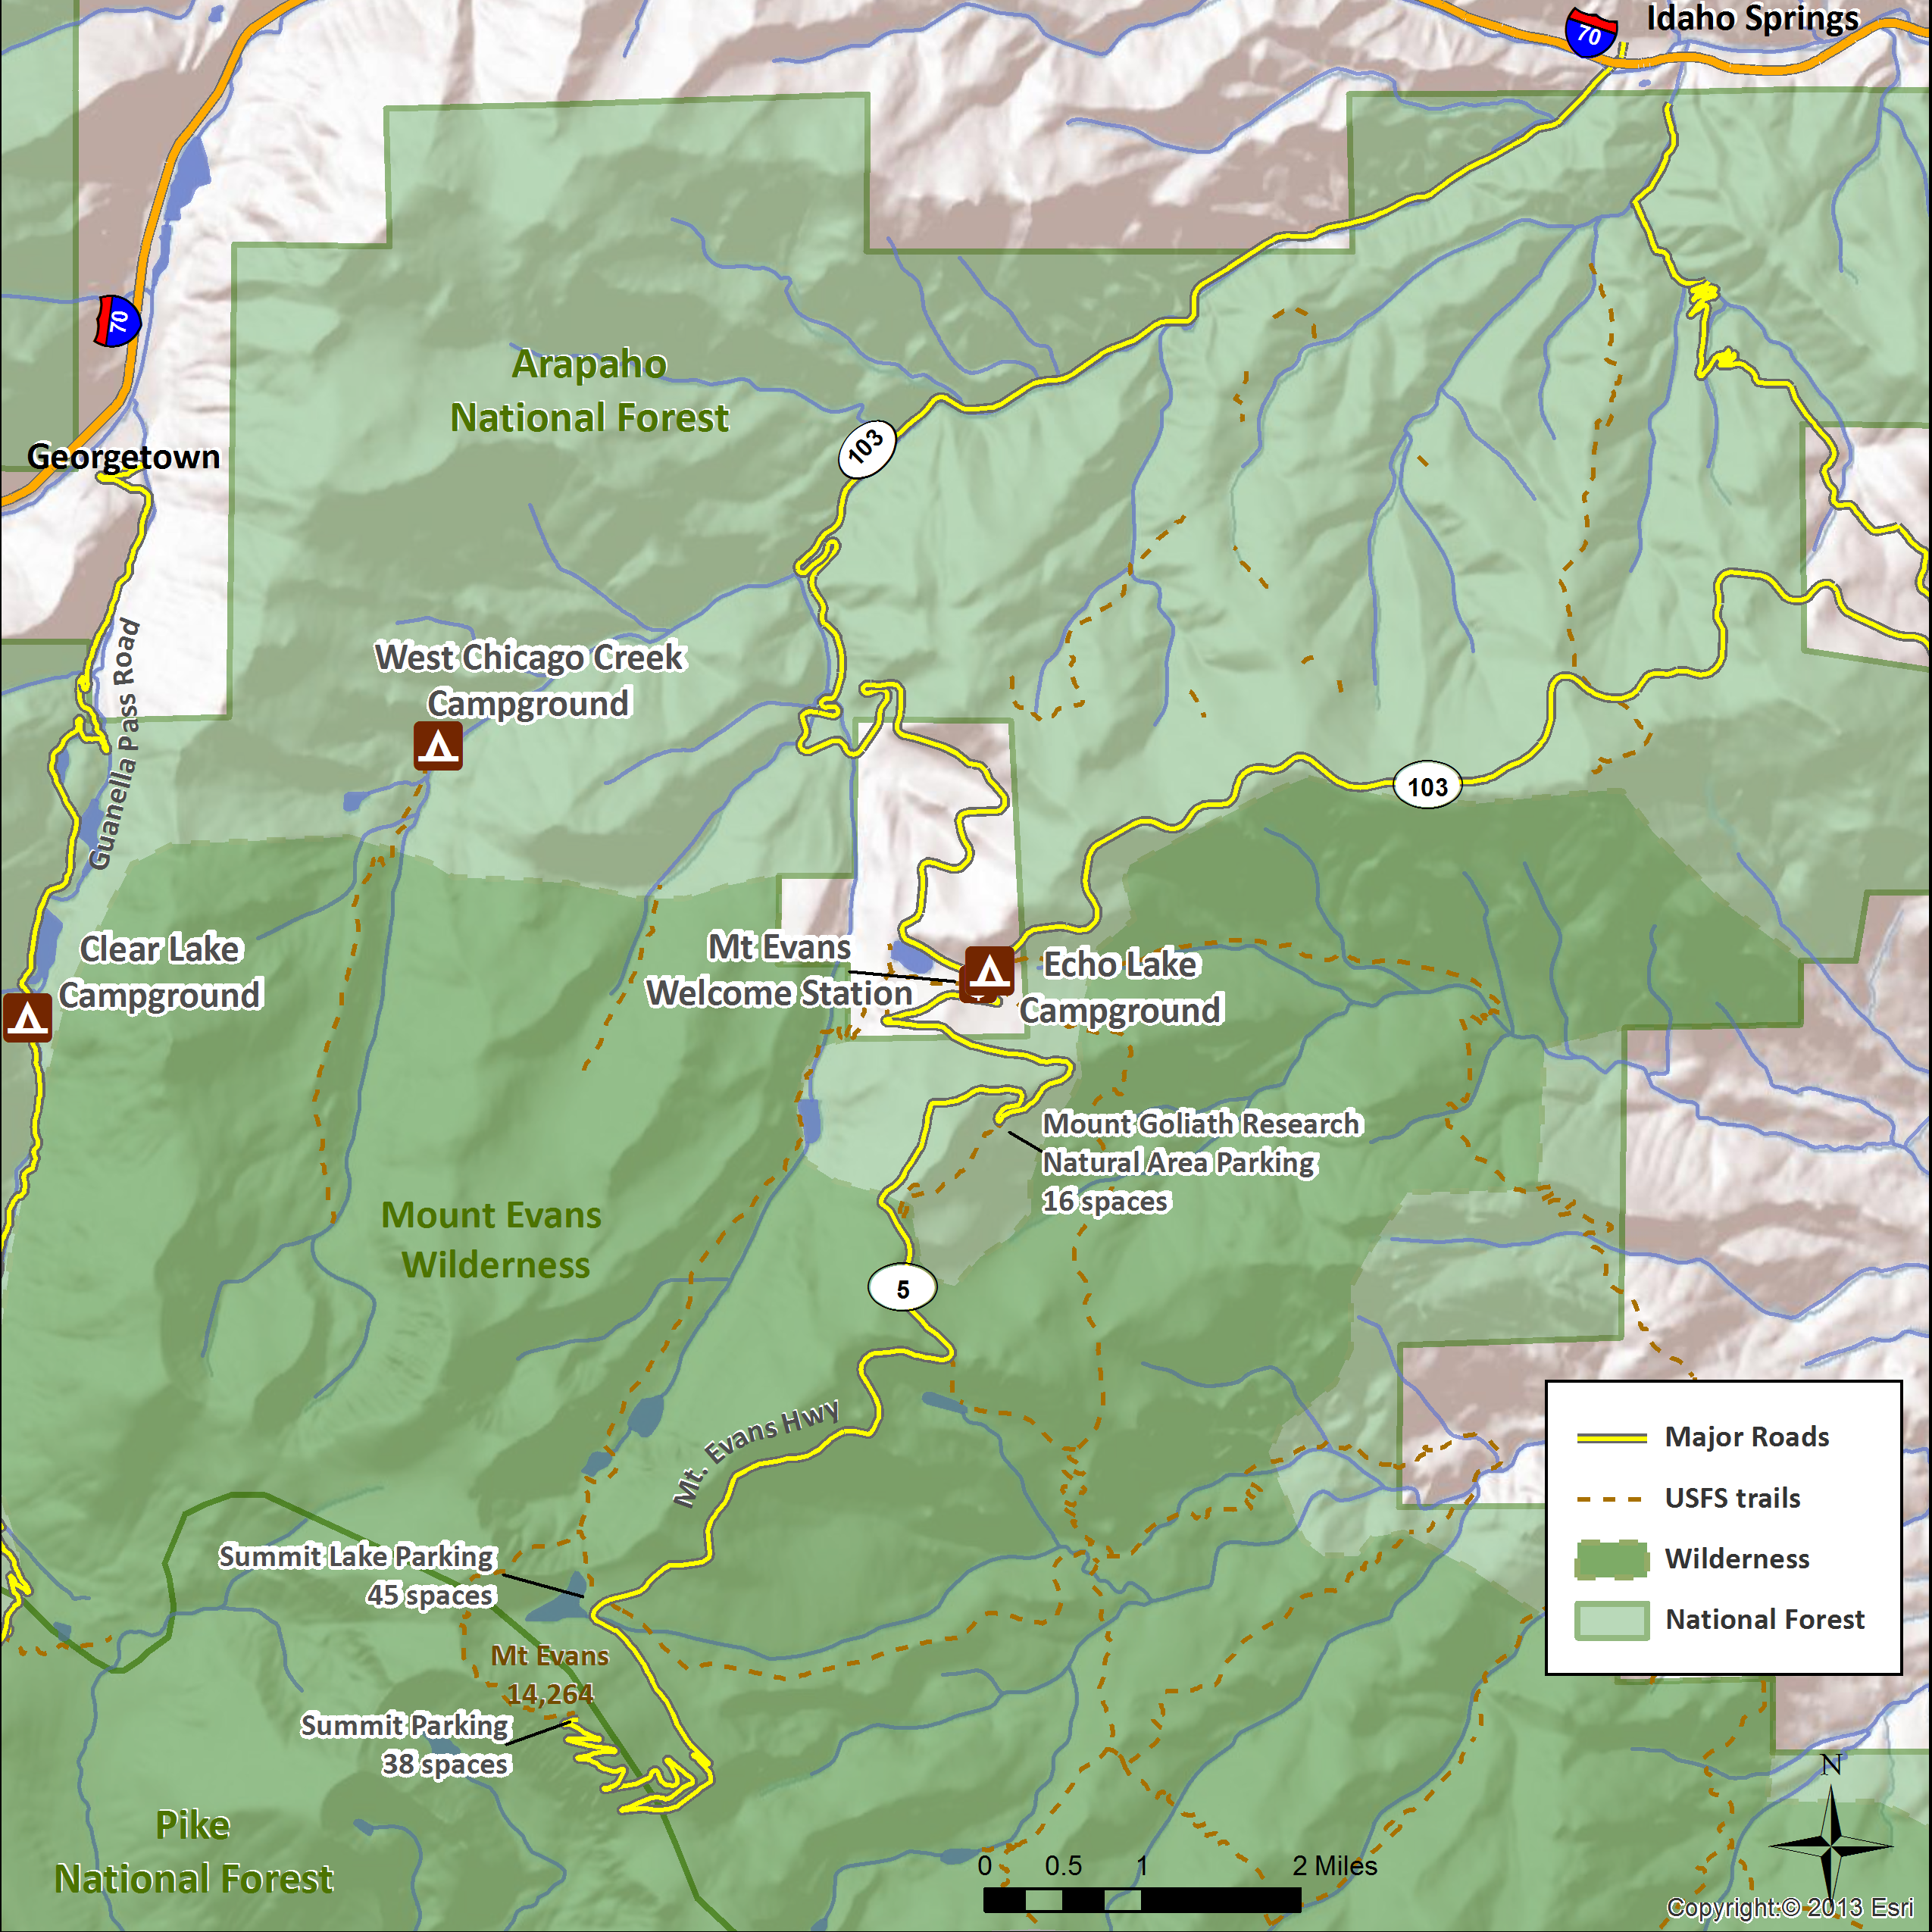 U.S. Forest Service — Arapaho Roosevelt National Forest